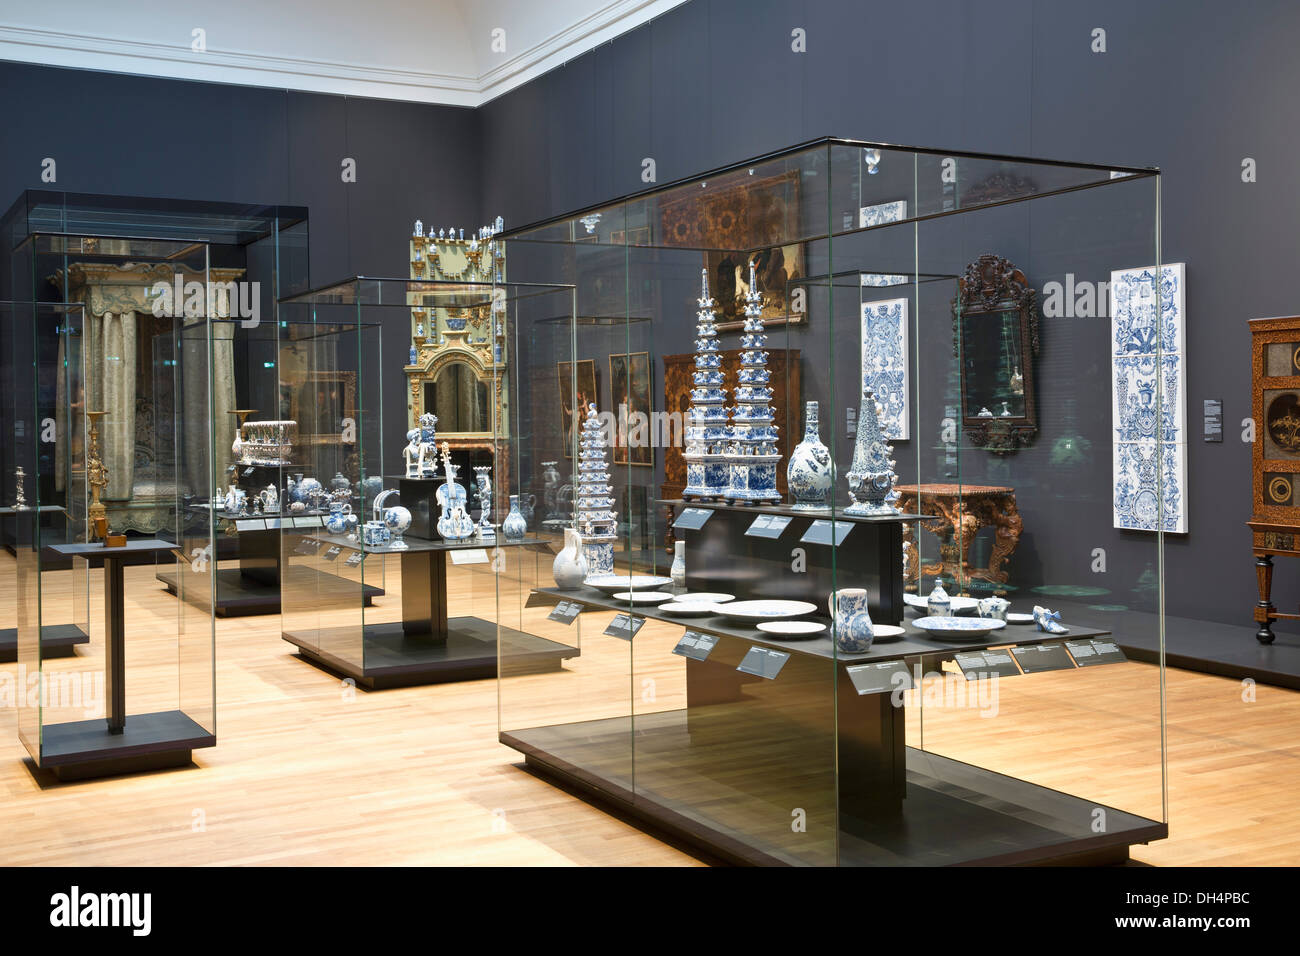 Netherlands, Amsterdam, Rijksmuseum. Delft's Blue tin-glazed earthenware ( faience ),  pottery and ornamental vases for flowers - Stock Image